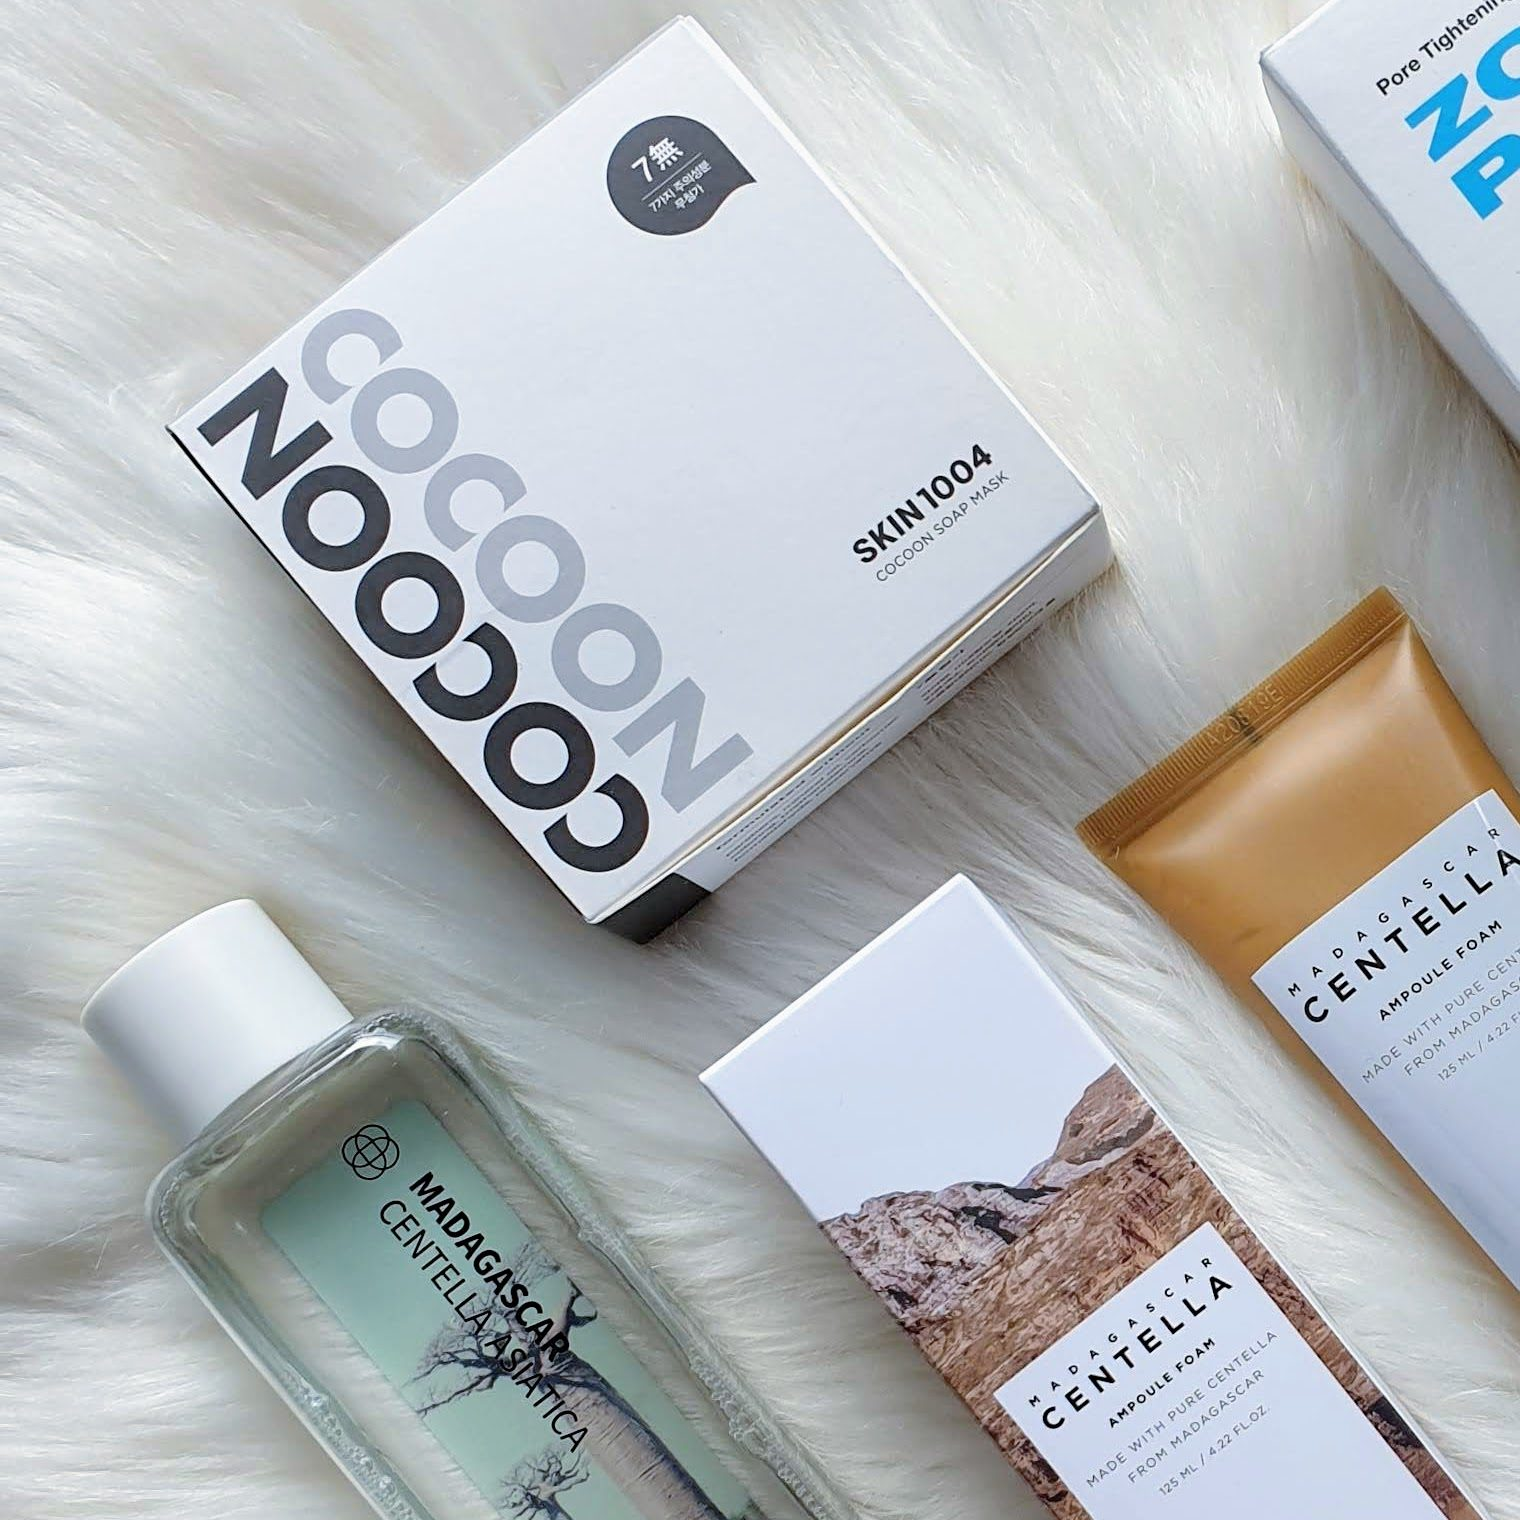 SKIN1004 Cocoon Soap Mask | Review